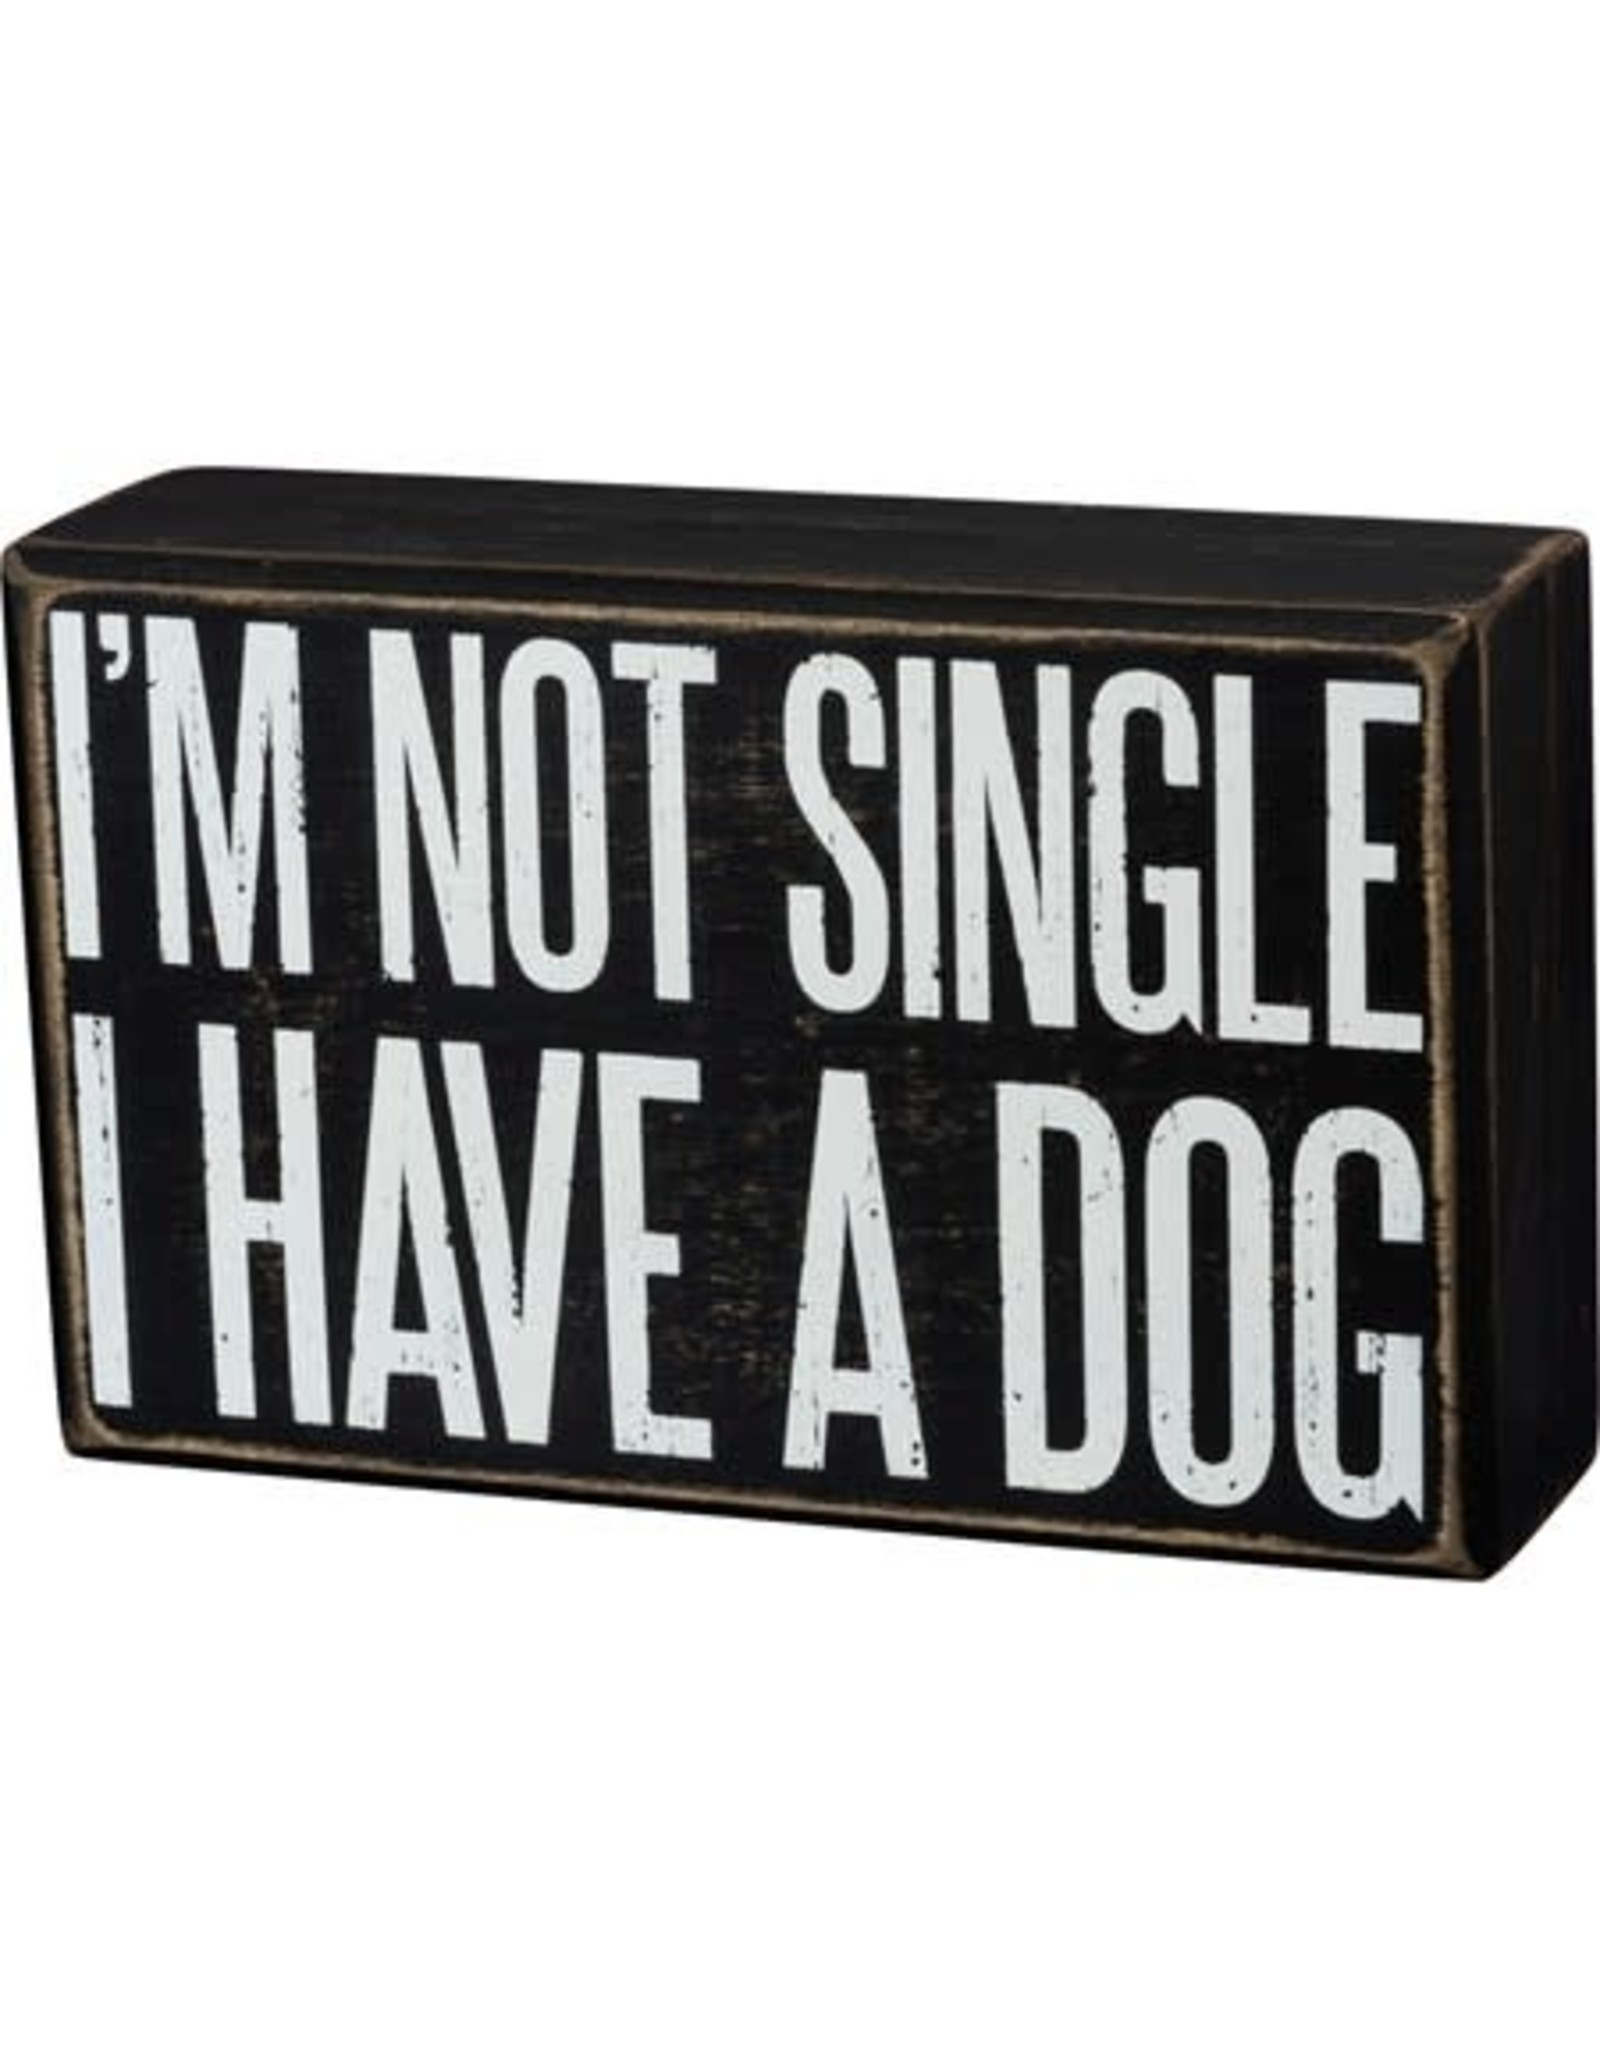 PRIMITIVES BY KATHY PET LOVER BLOCK SIGNS NOT SINGLE HAVE A DOG